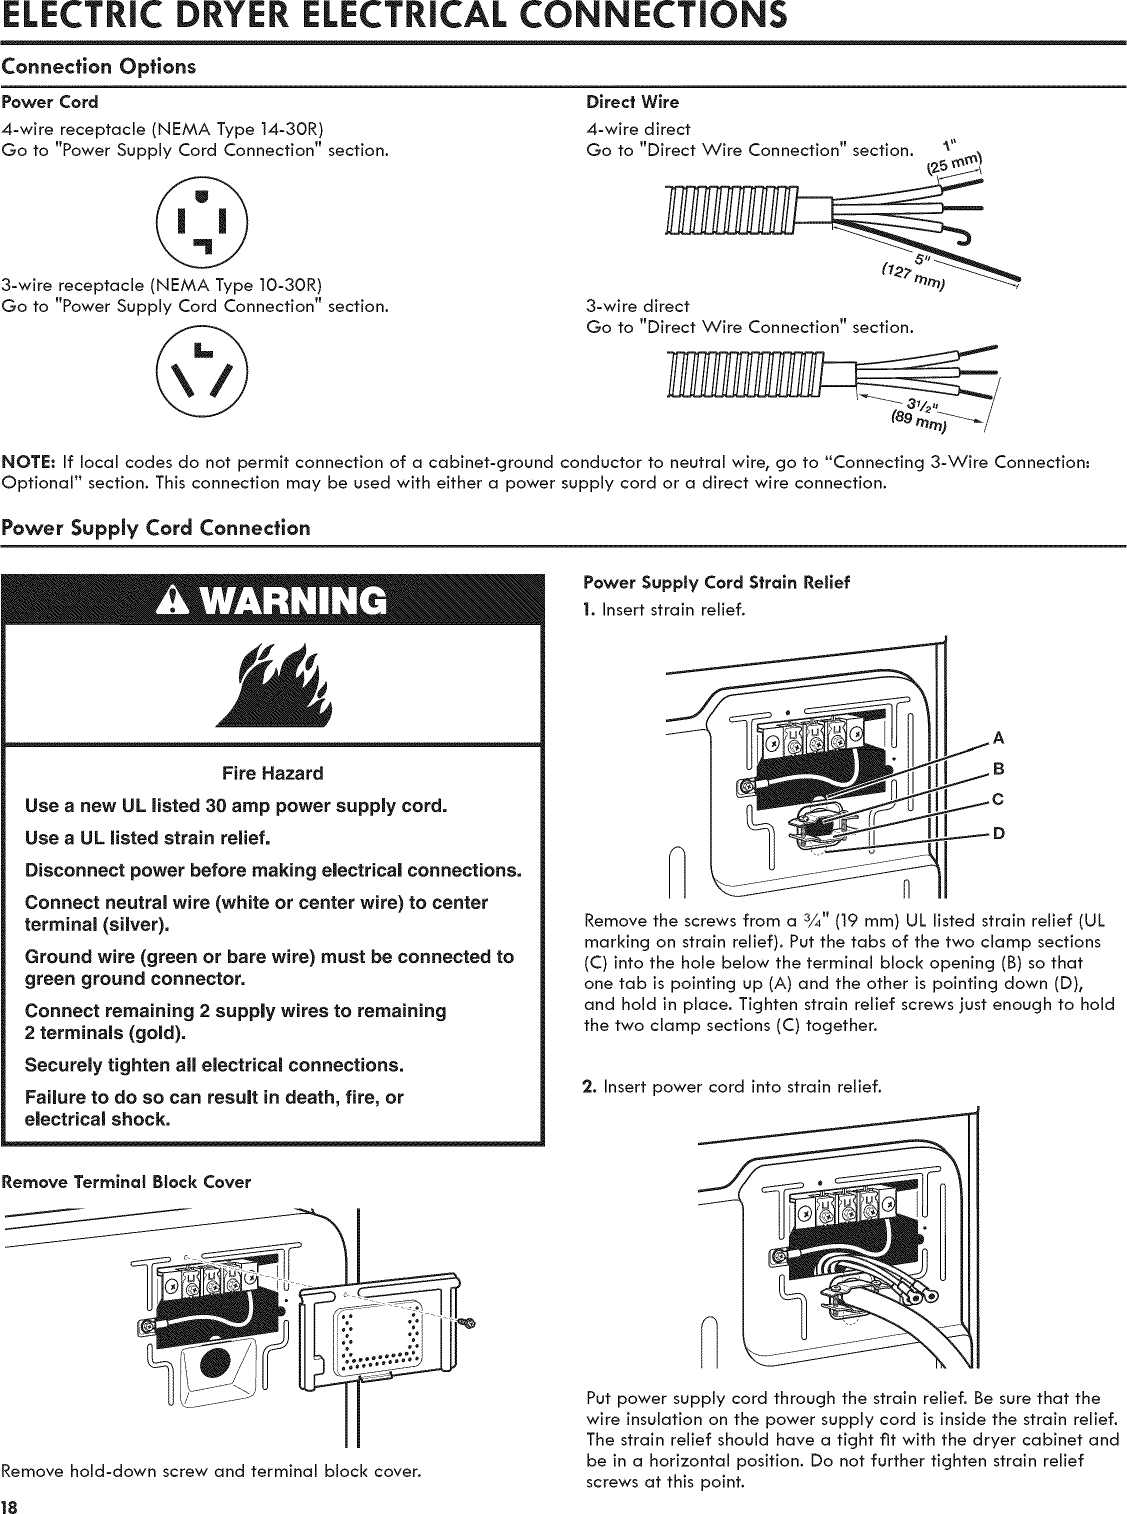 Kenmore 11081932510 User Manual Commercial Electric Dryer Manuals 10 3 Wire For Diagram Electrical Connectionsconnection Optionspower Cord4 Receptacle Nema Type 14 30r